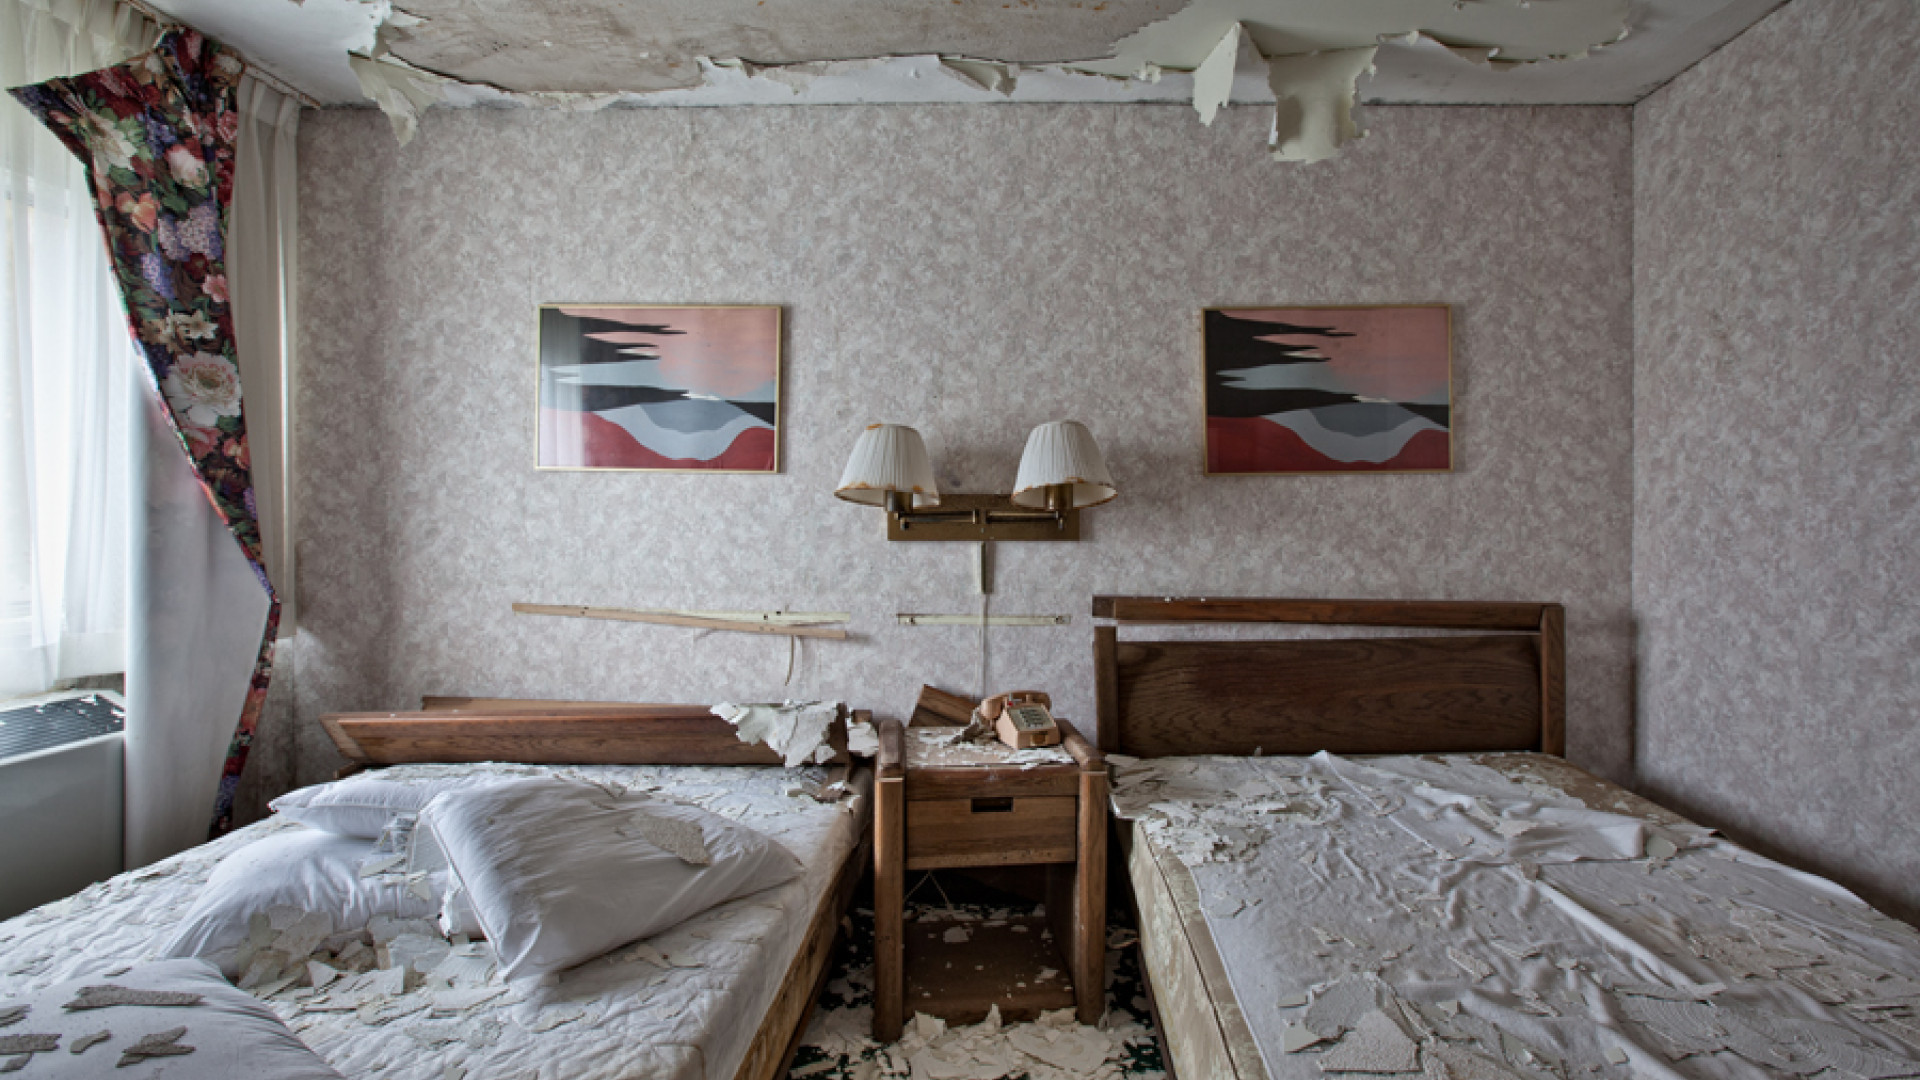 Two beds in a vandalised room in Niagara Falls